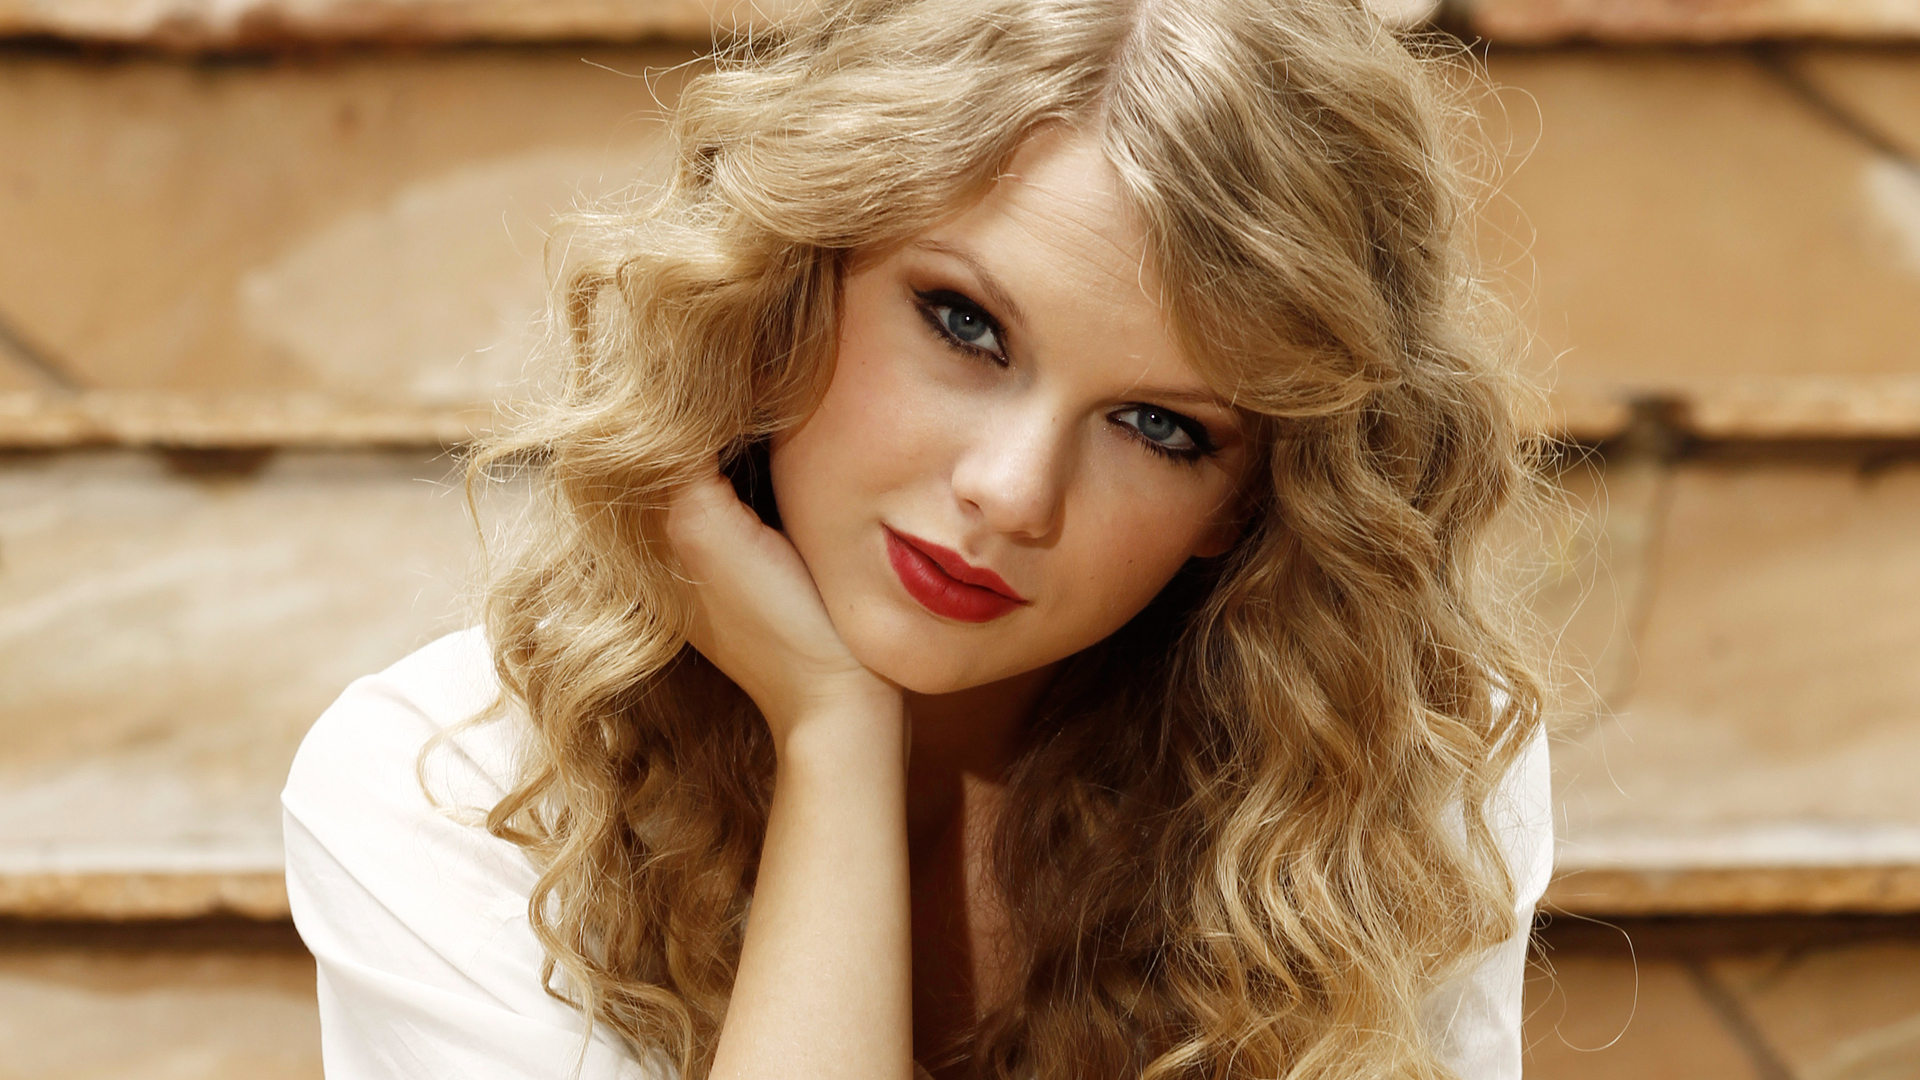 Lovley Taylor Wallpaper   Taylor Swift Wallpaper 19907330 1920x1080